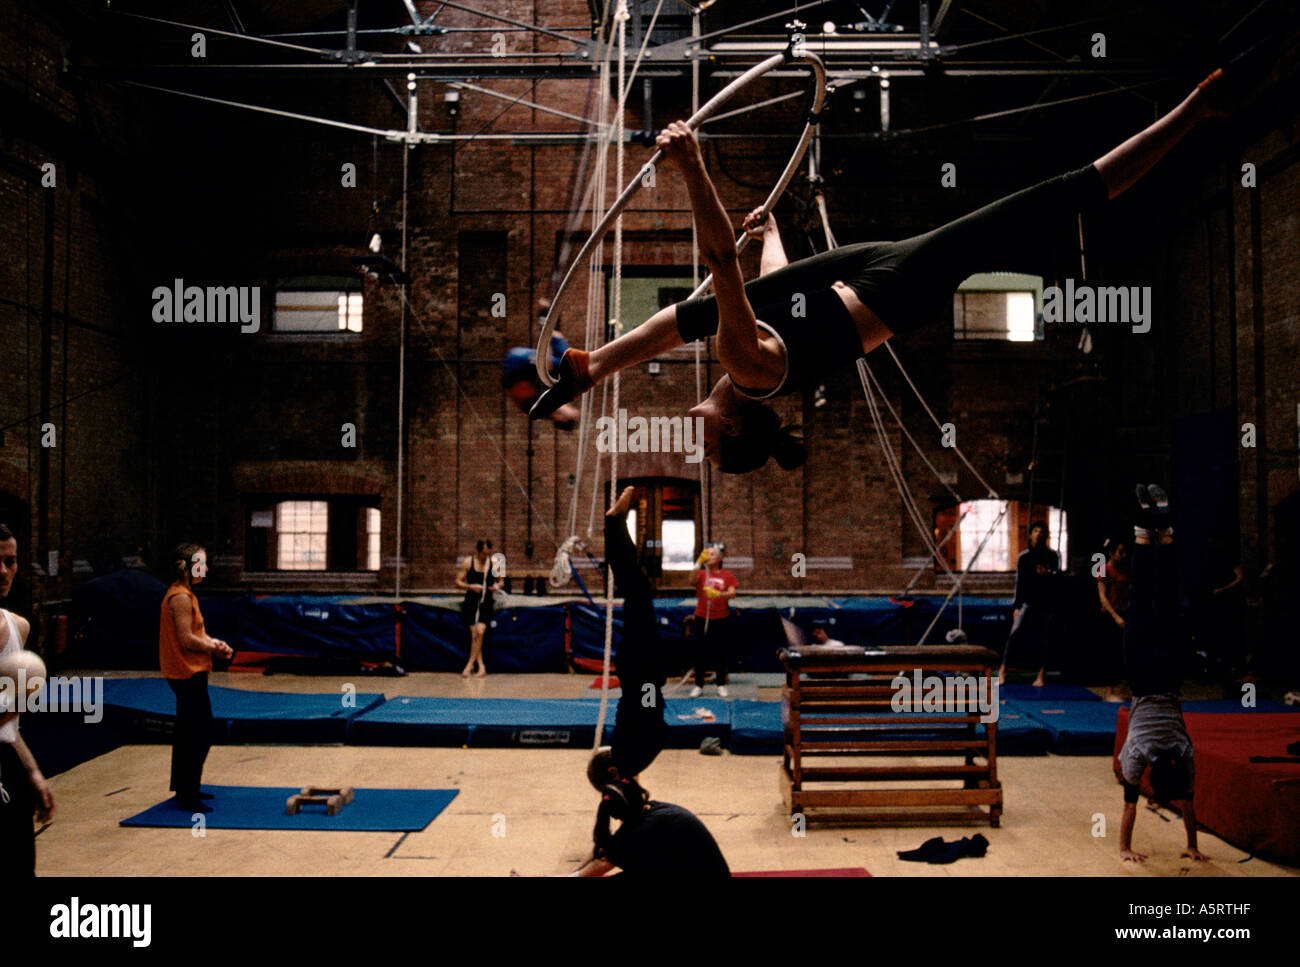 LONDON S EAST END THE CIRCUS SPACE IS BECOMING THE LEADING SCHOOL FOR ASPIRING ARTISTES HOXTON SQ - Stock Image